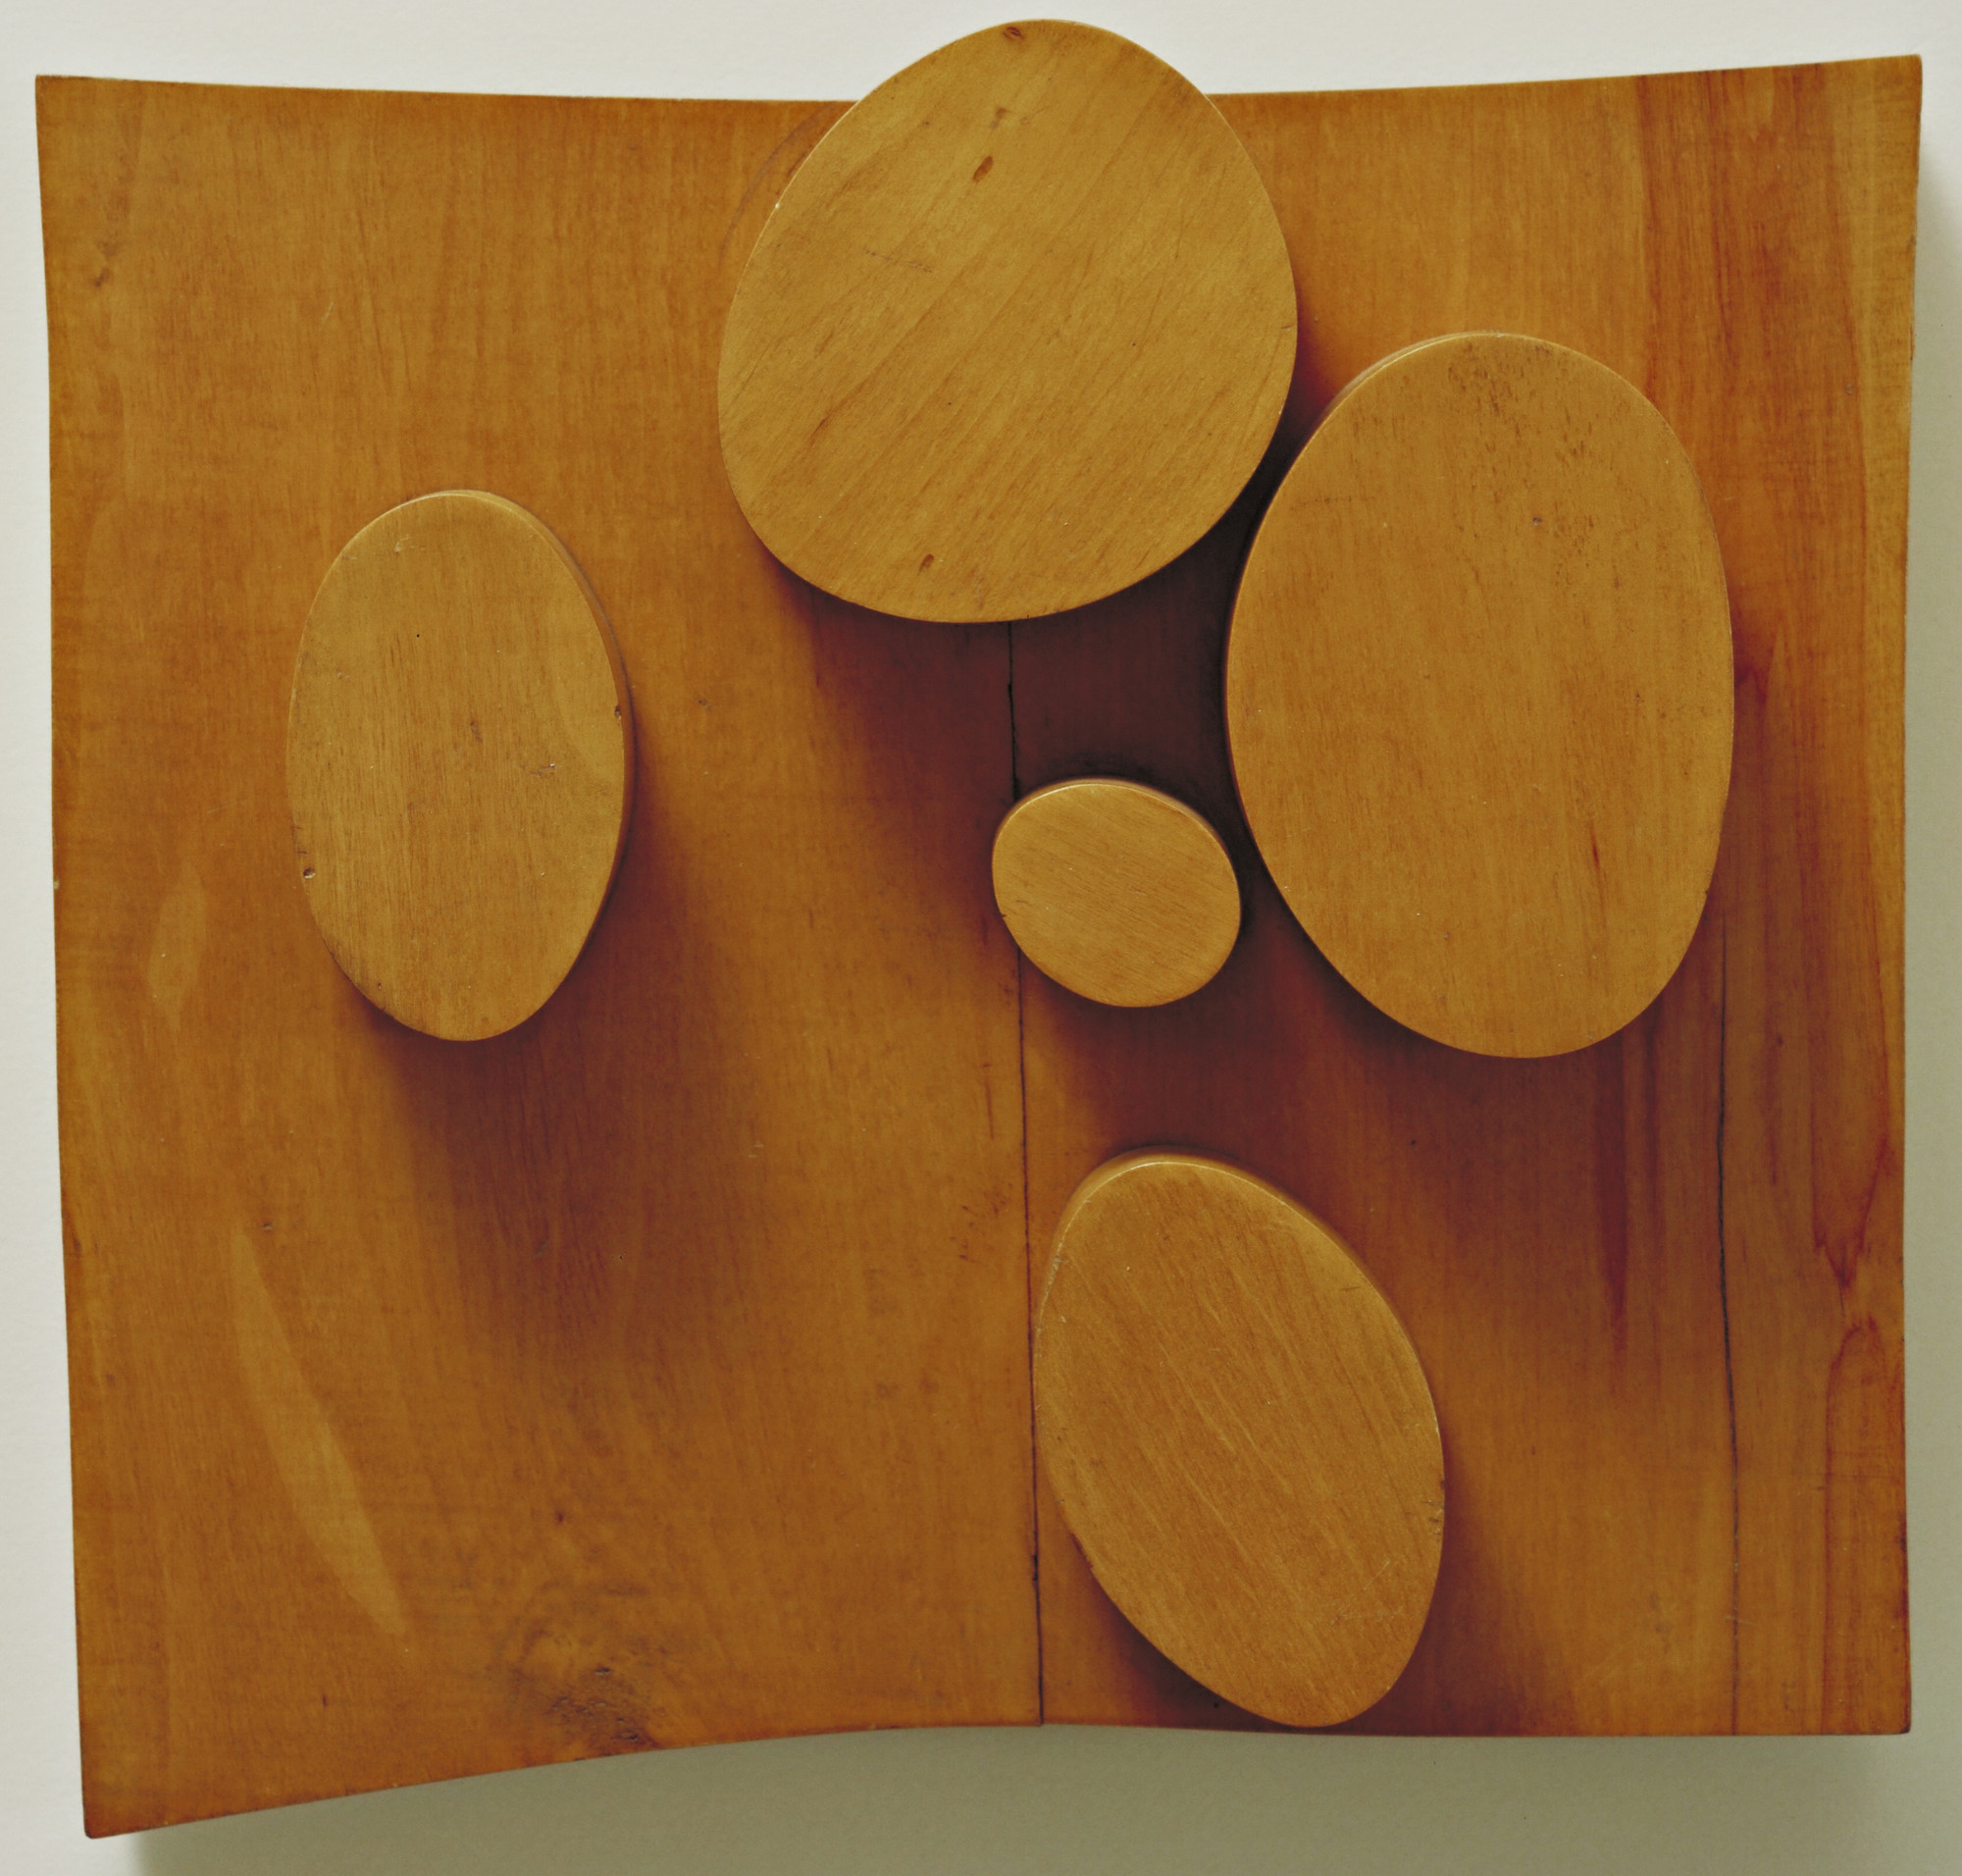 Jean (Hans) Arp. Objects Arranged According to the Law of Chance. 1930